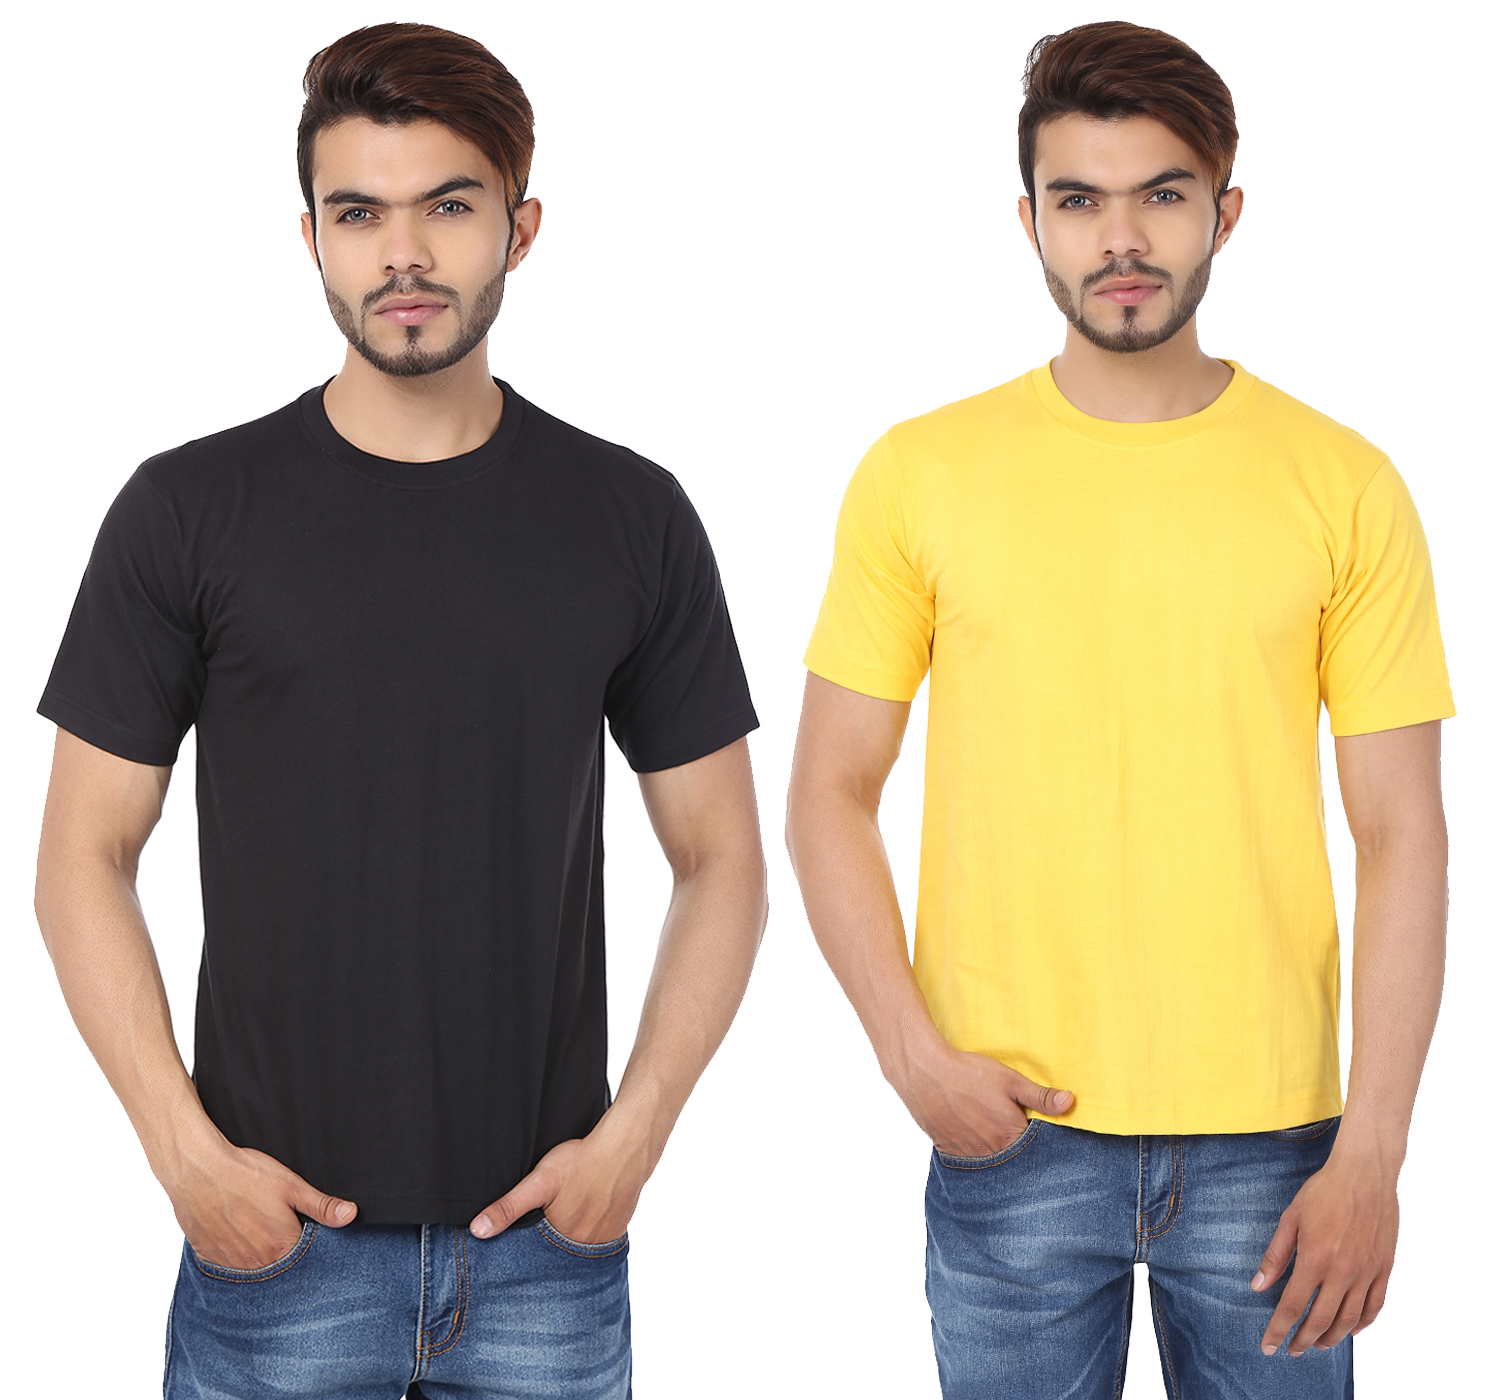 Weardo Combo Of Men's 2 Round Neck T-Shirts In Black & Yellow Color